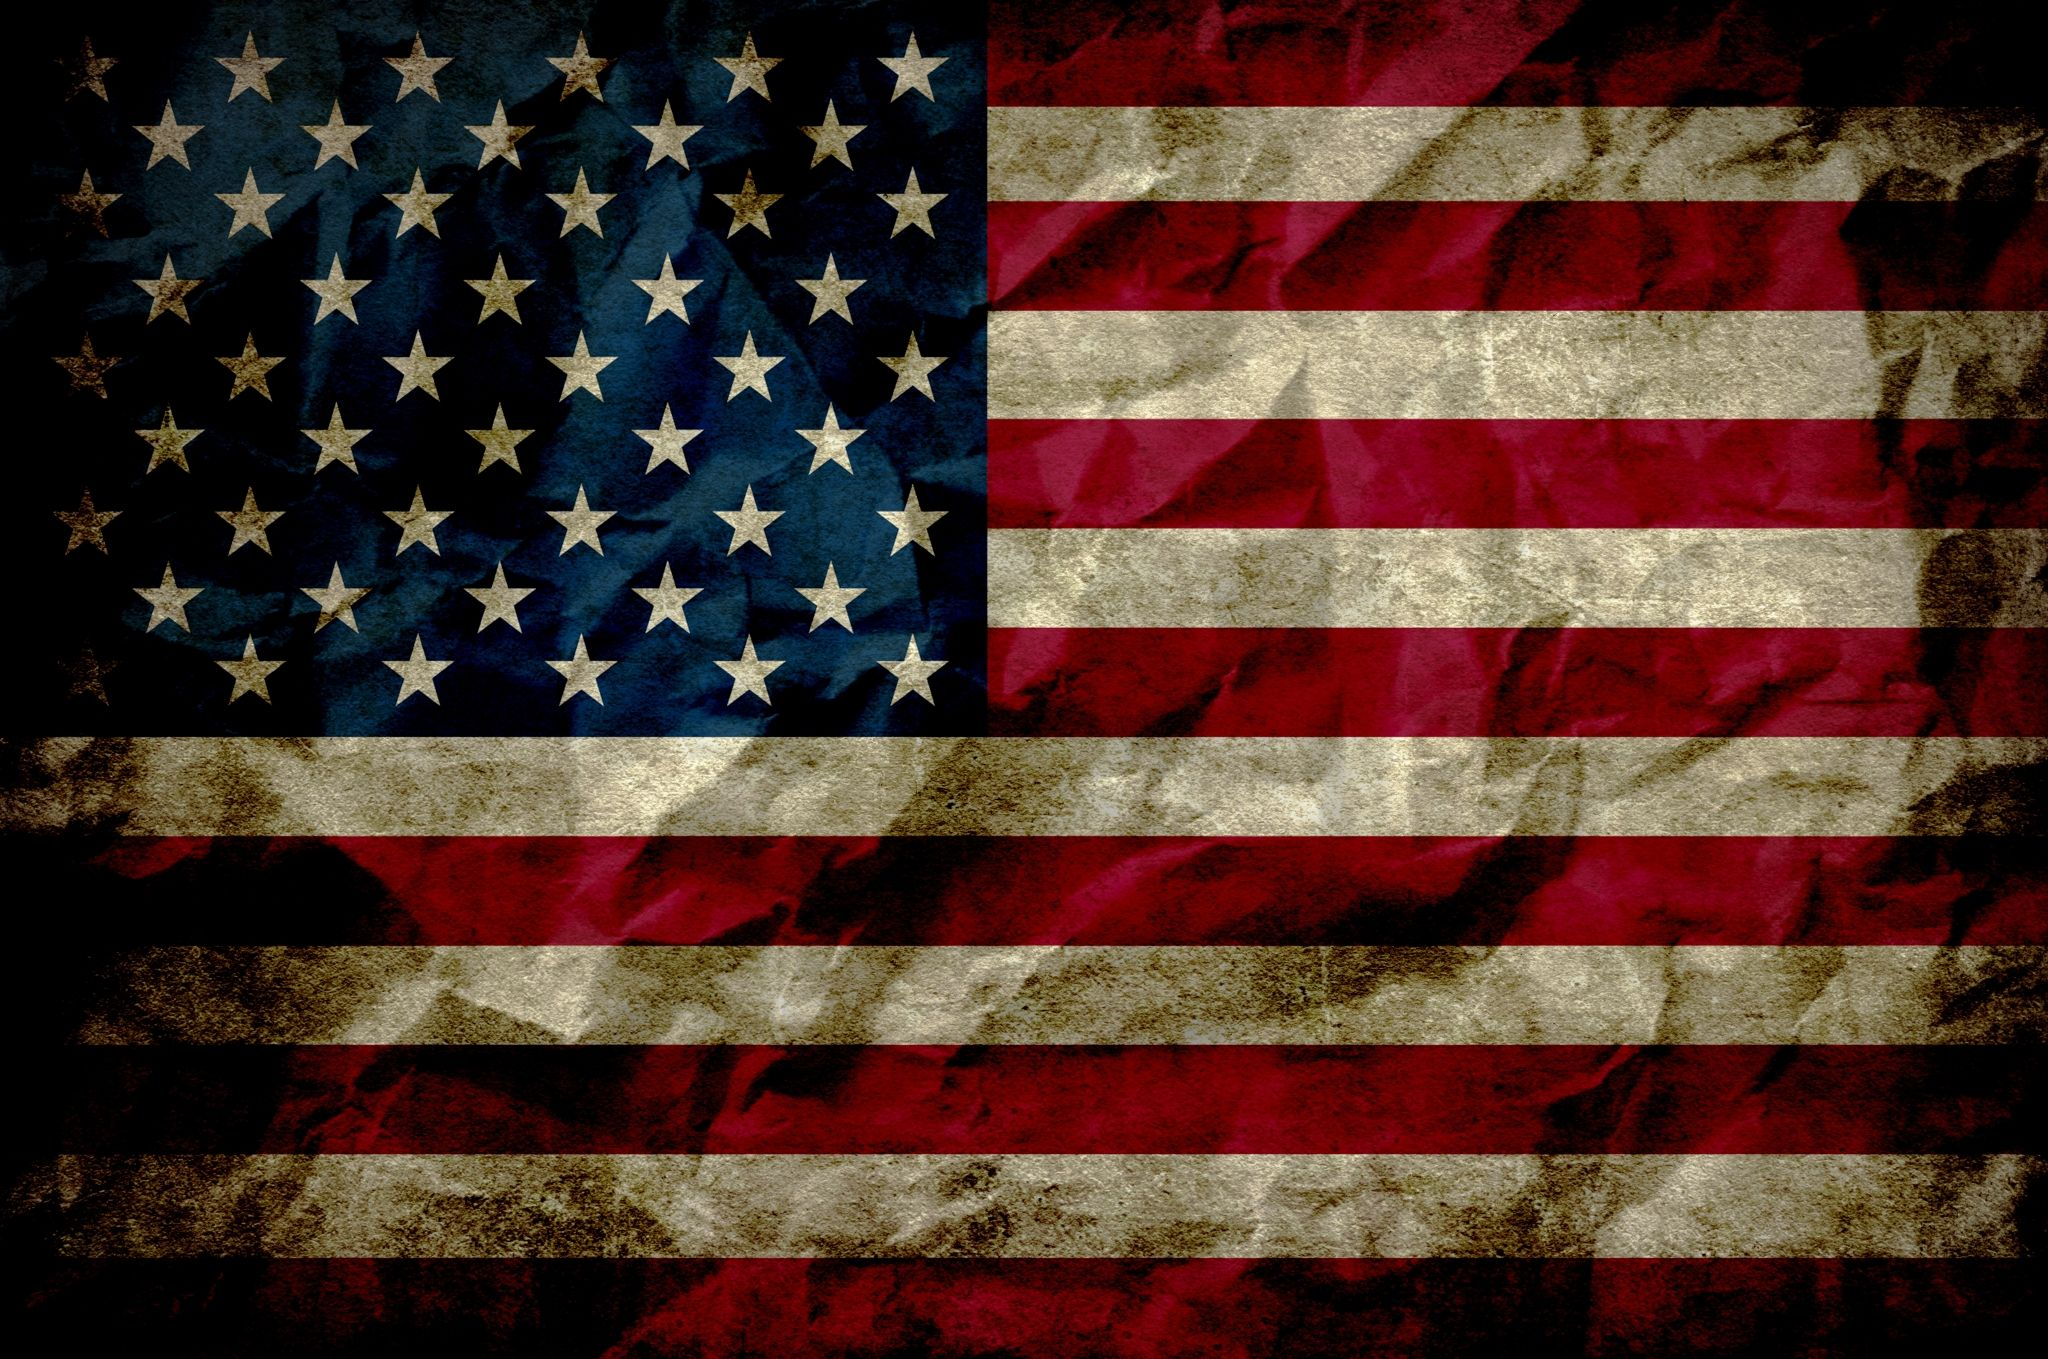 Flag Desktop Background: American Flag Wallpaper Free Desktop Wallpapers